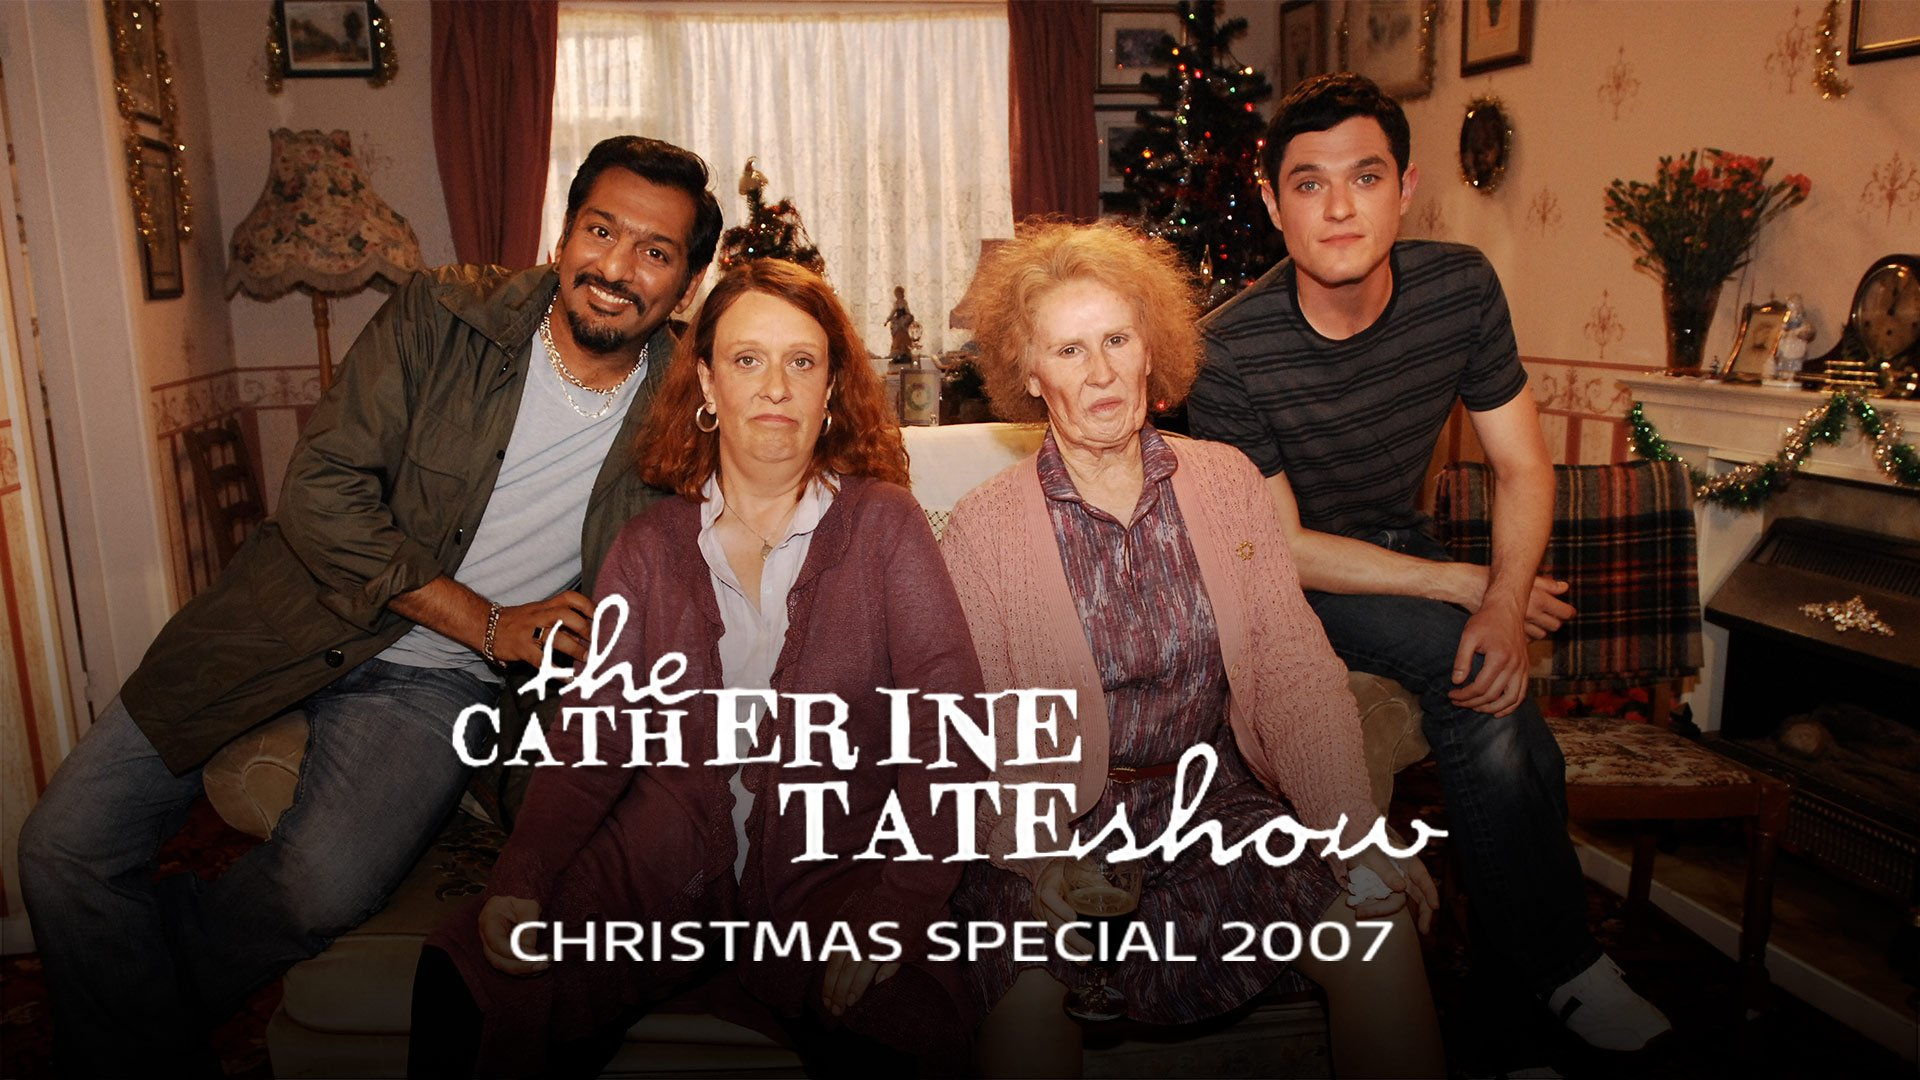 The Catherine Tate Show Christmas Special 2007 on BritBox UK